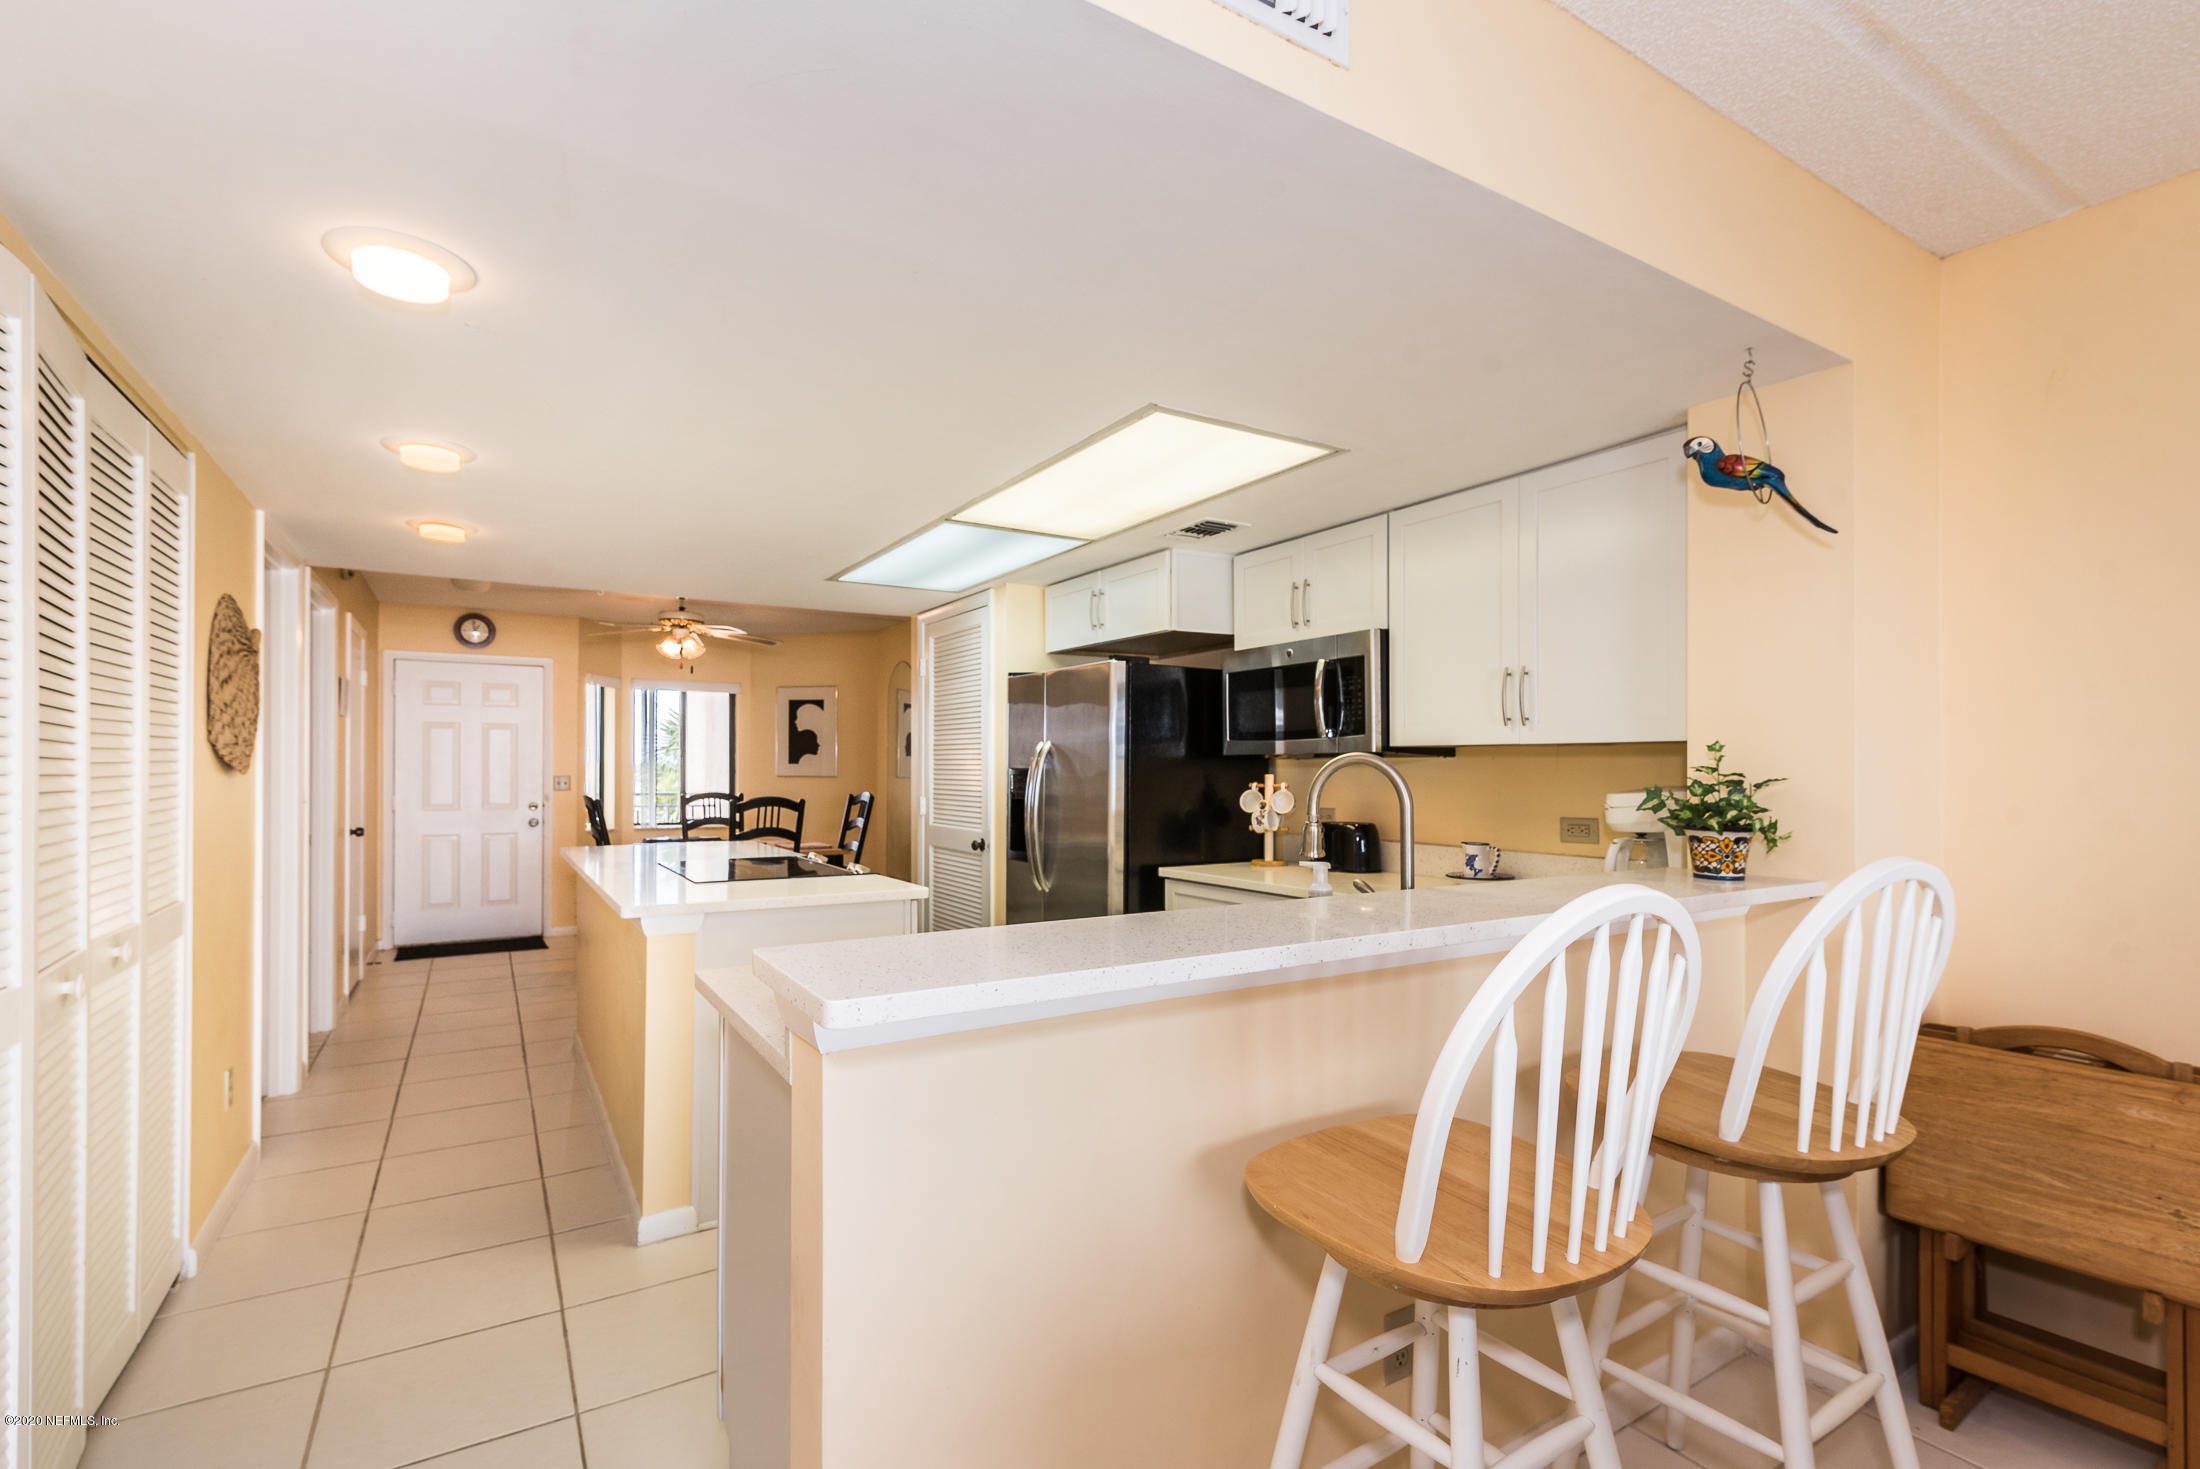 7780 A1A, ST AUGUSTINE, FLORIDA 32080, 2 Bedrooms Bedrooms, ,2 BathroomsBathrooms,Residential,For sale,A1A,1057004